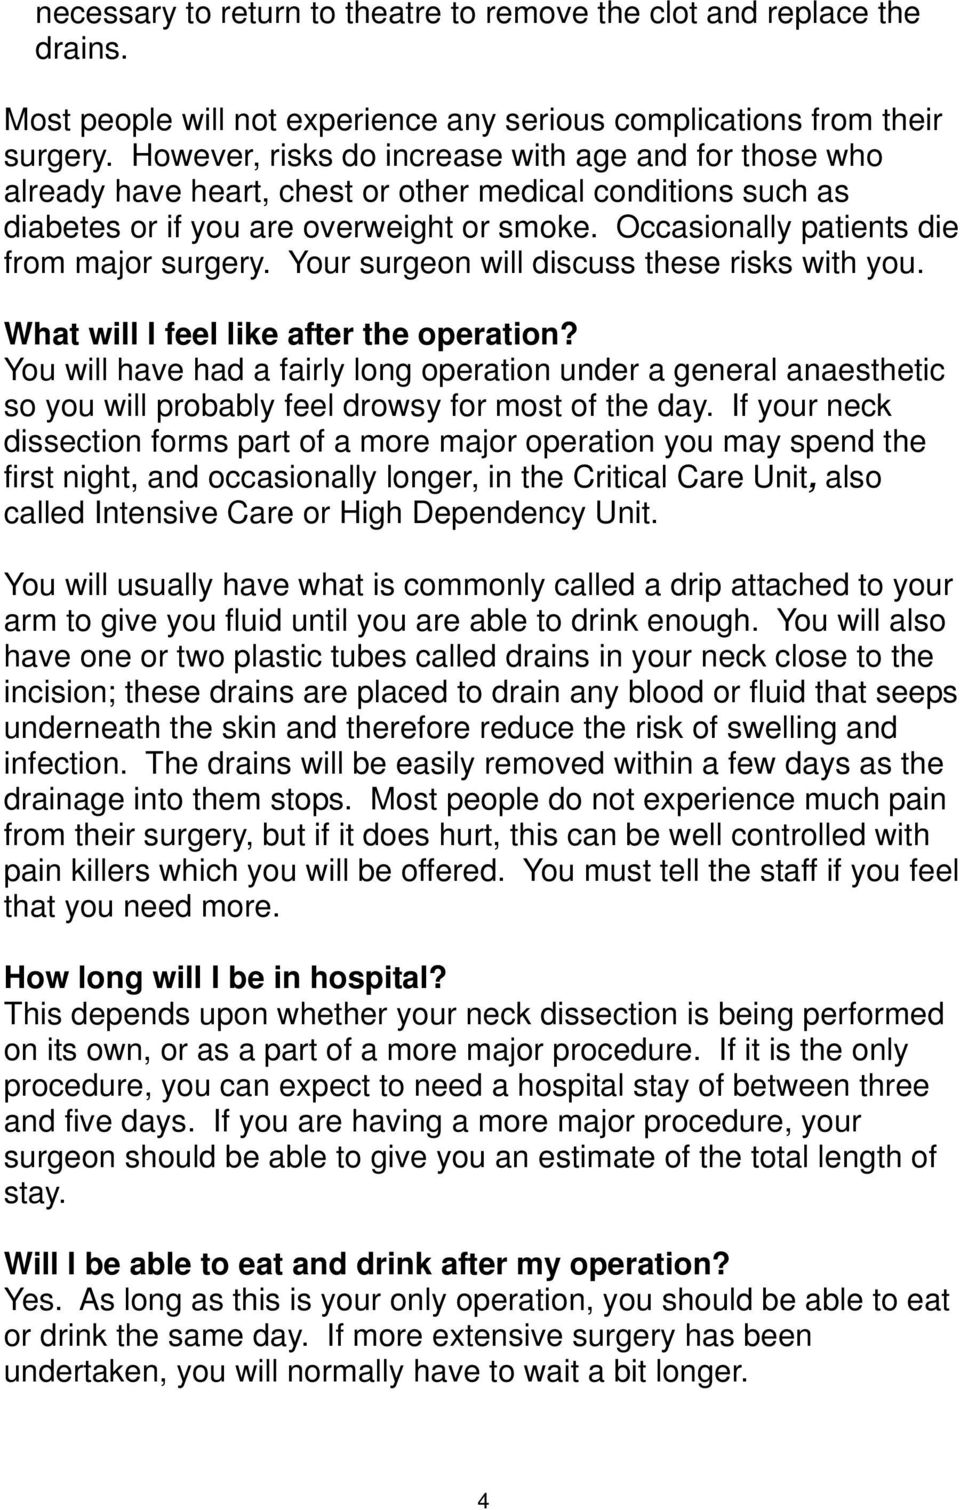 Occasionally patients die from major surgery. Your surgeon will discuss these risks with you. What will I feel like after the operation?